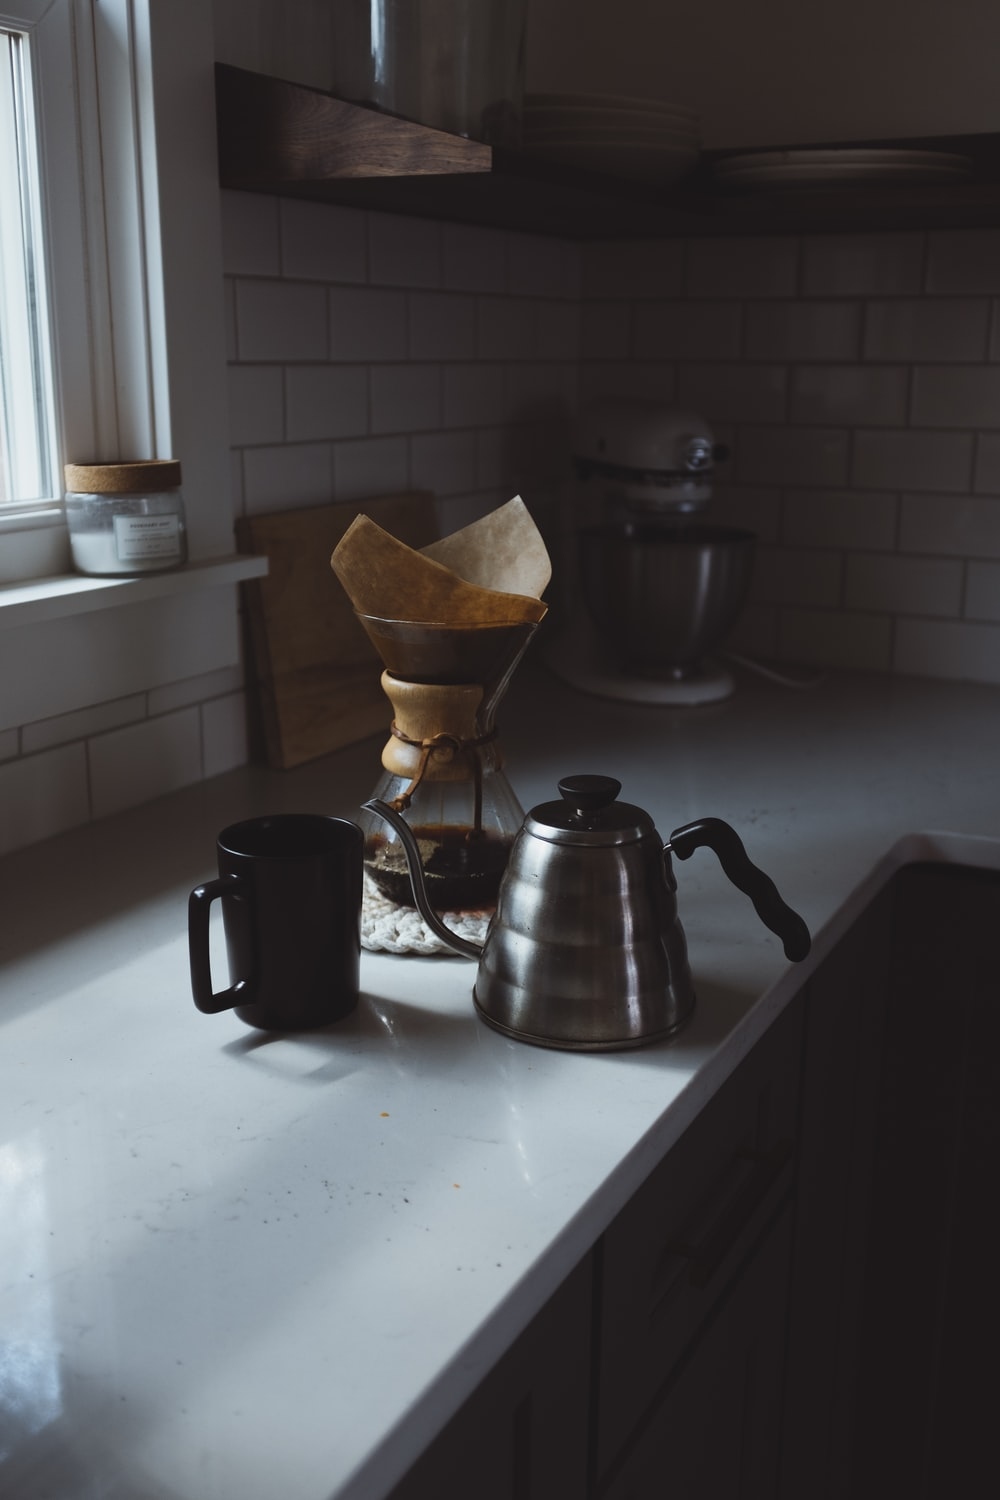 still life photography of coffee and carafe at the kitchen